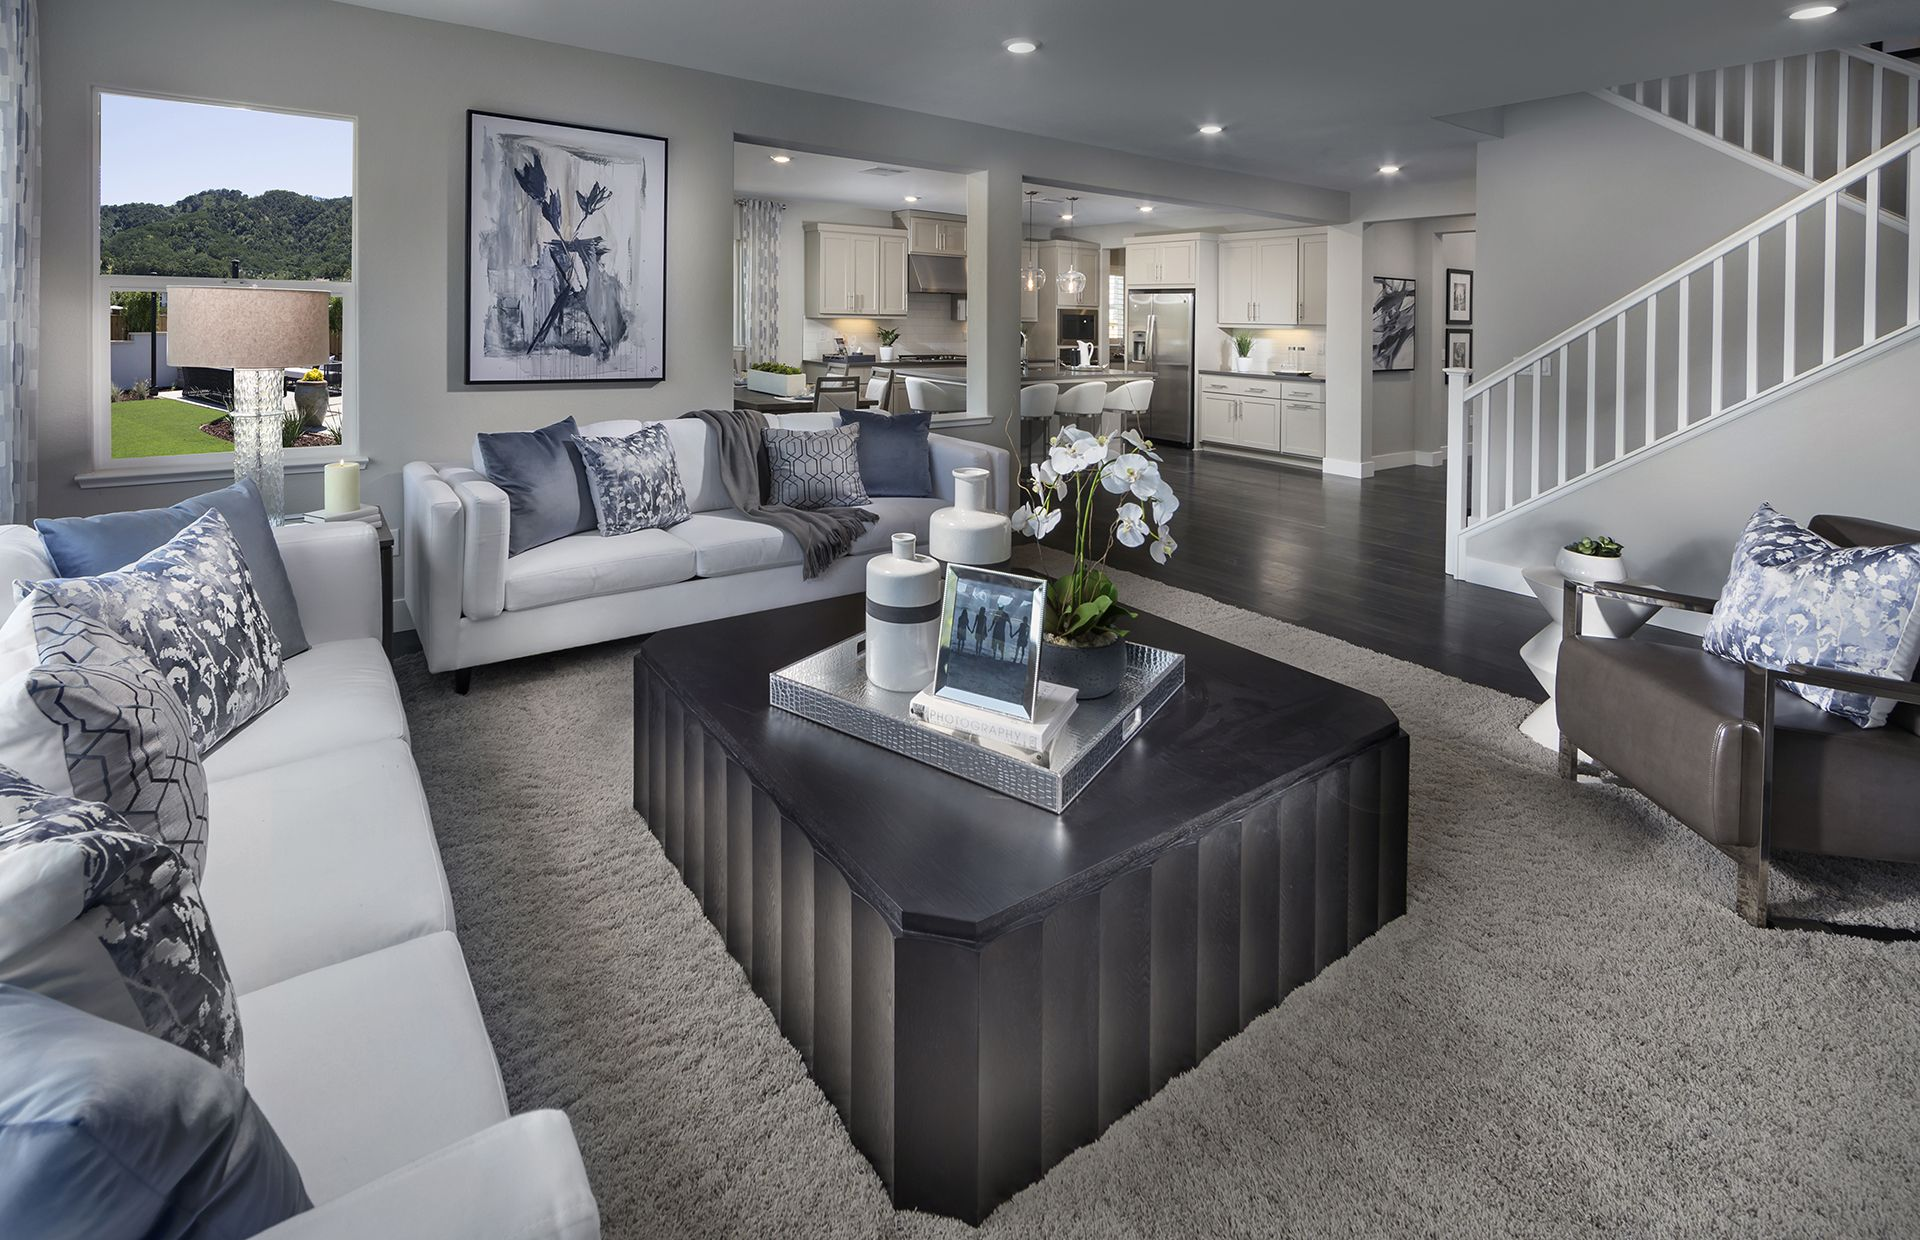 Sneak peek into Provence at Glen Loma Ranch in Gilroy! The